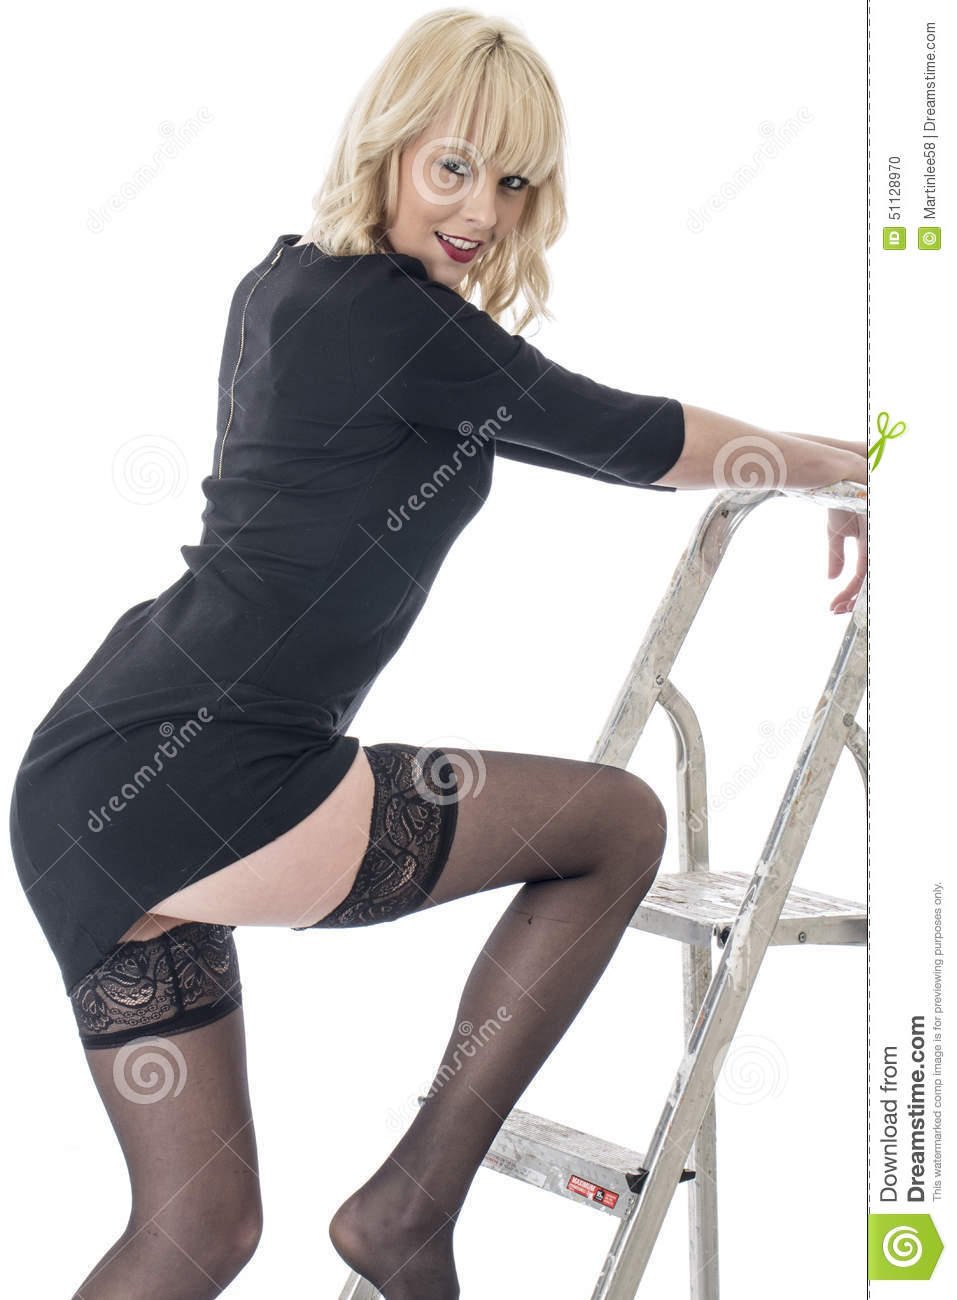 01d48bef321 Young Woman Stepping on Ladder with Thigh Showing Wearing Black Stockings